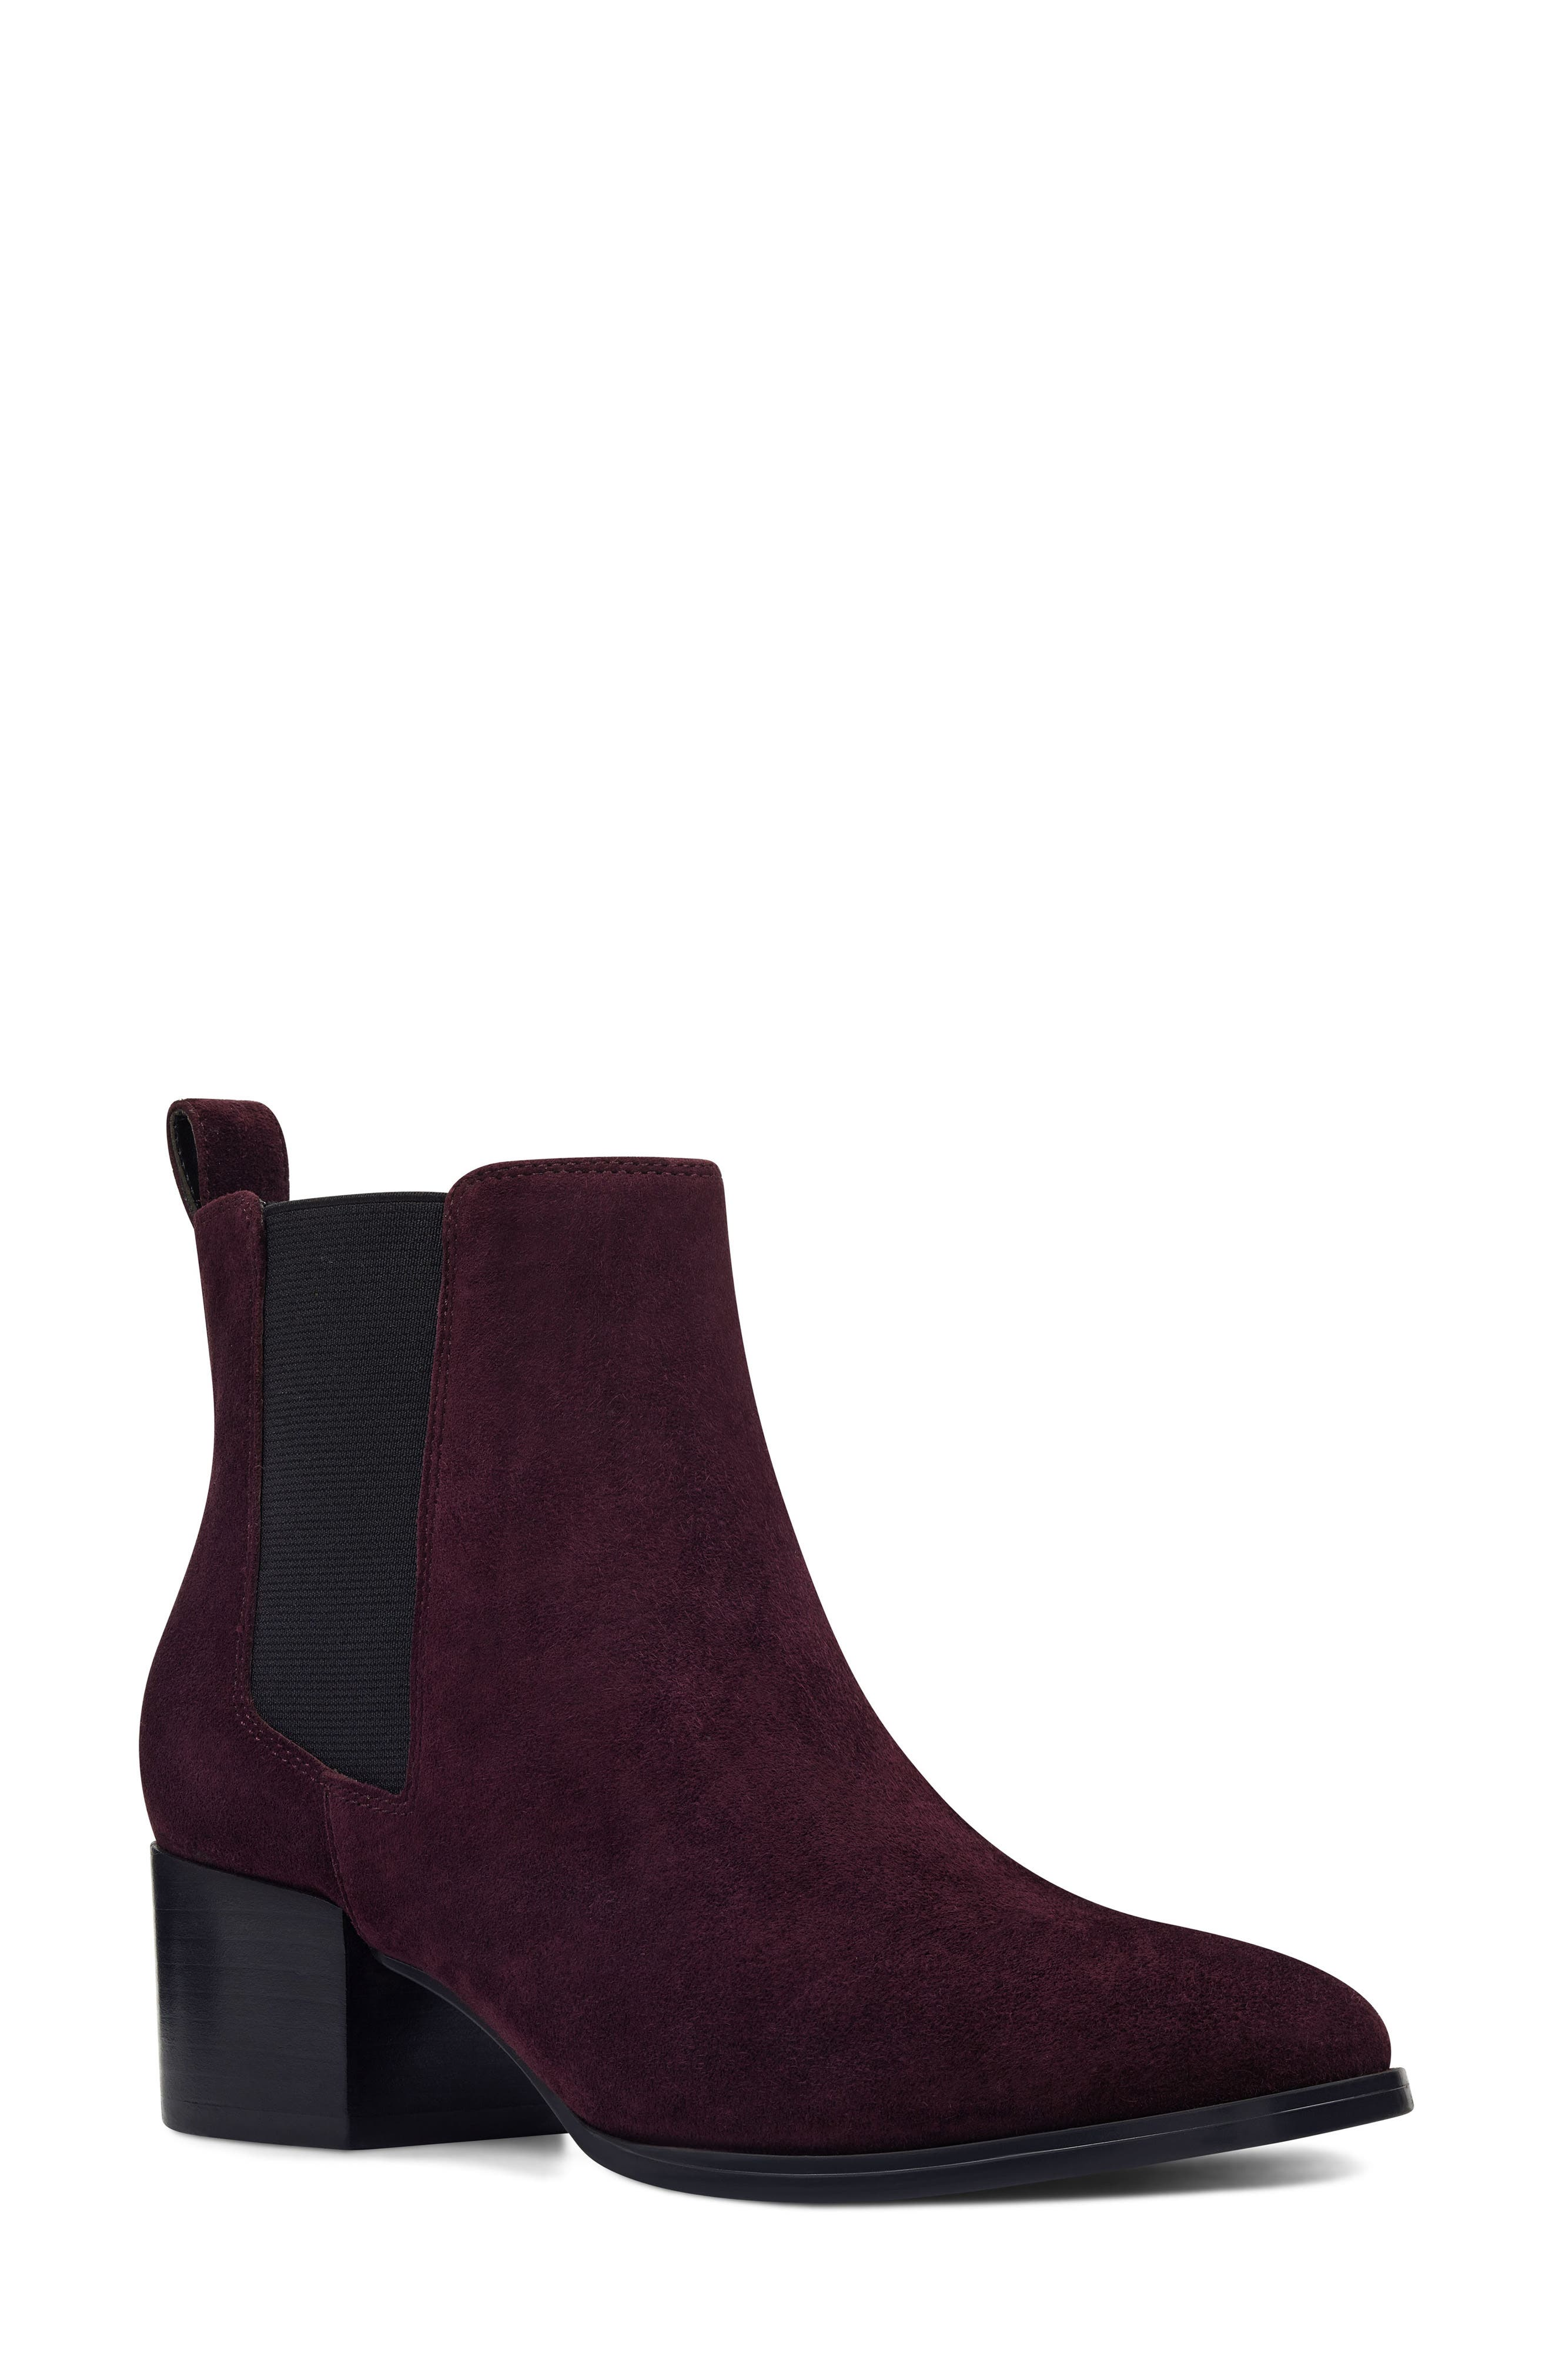 Nine West Colt Chelsea Boot, Red